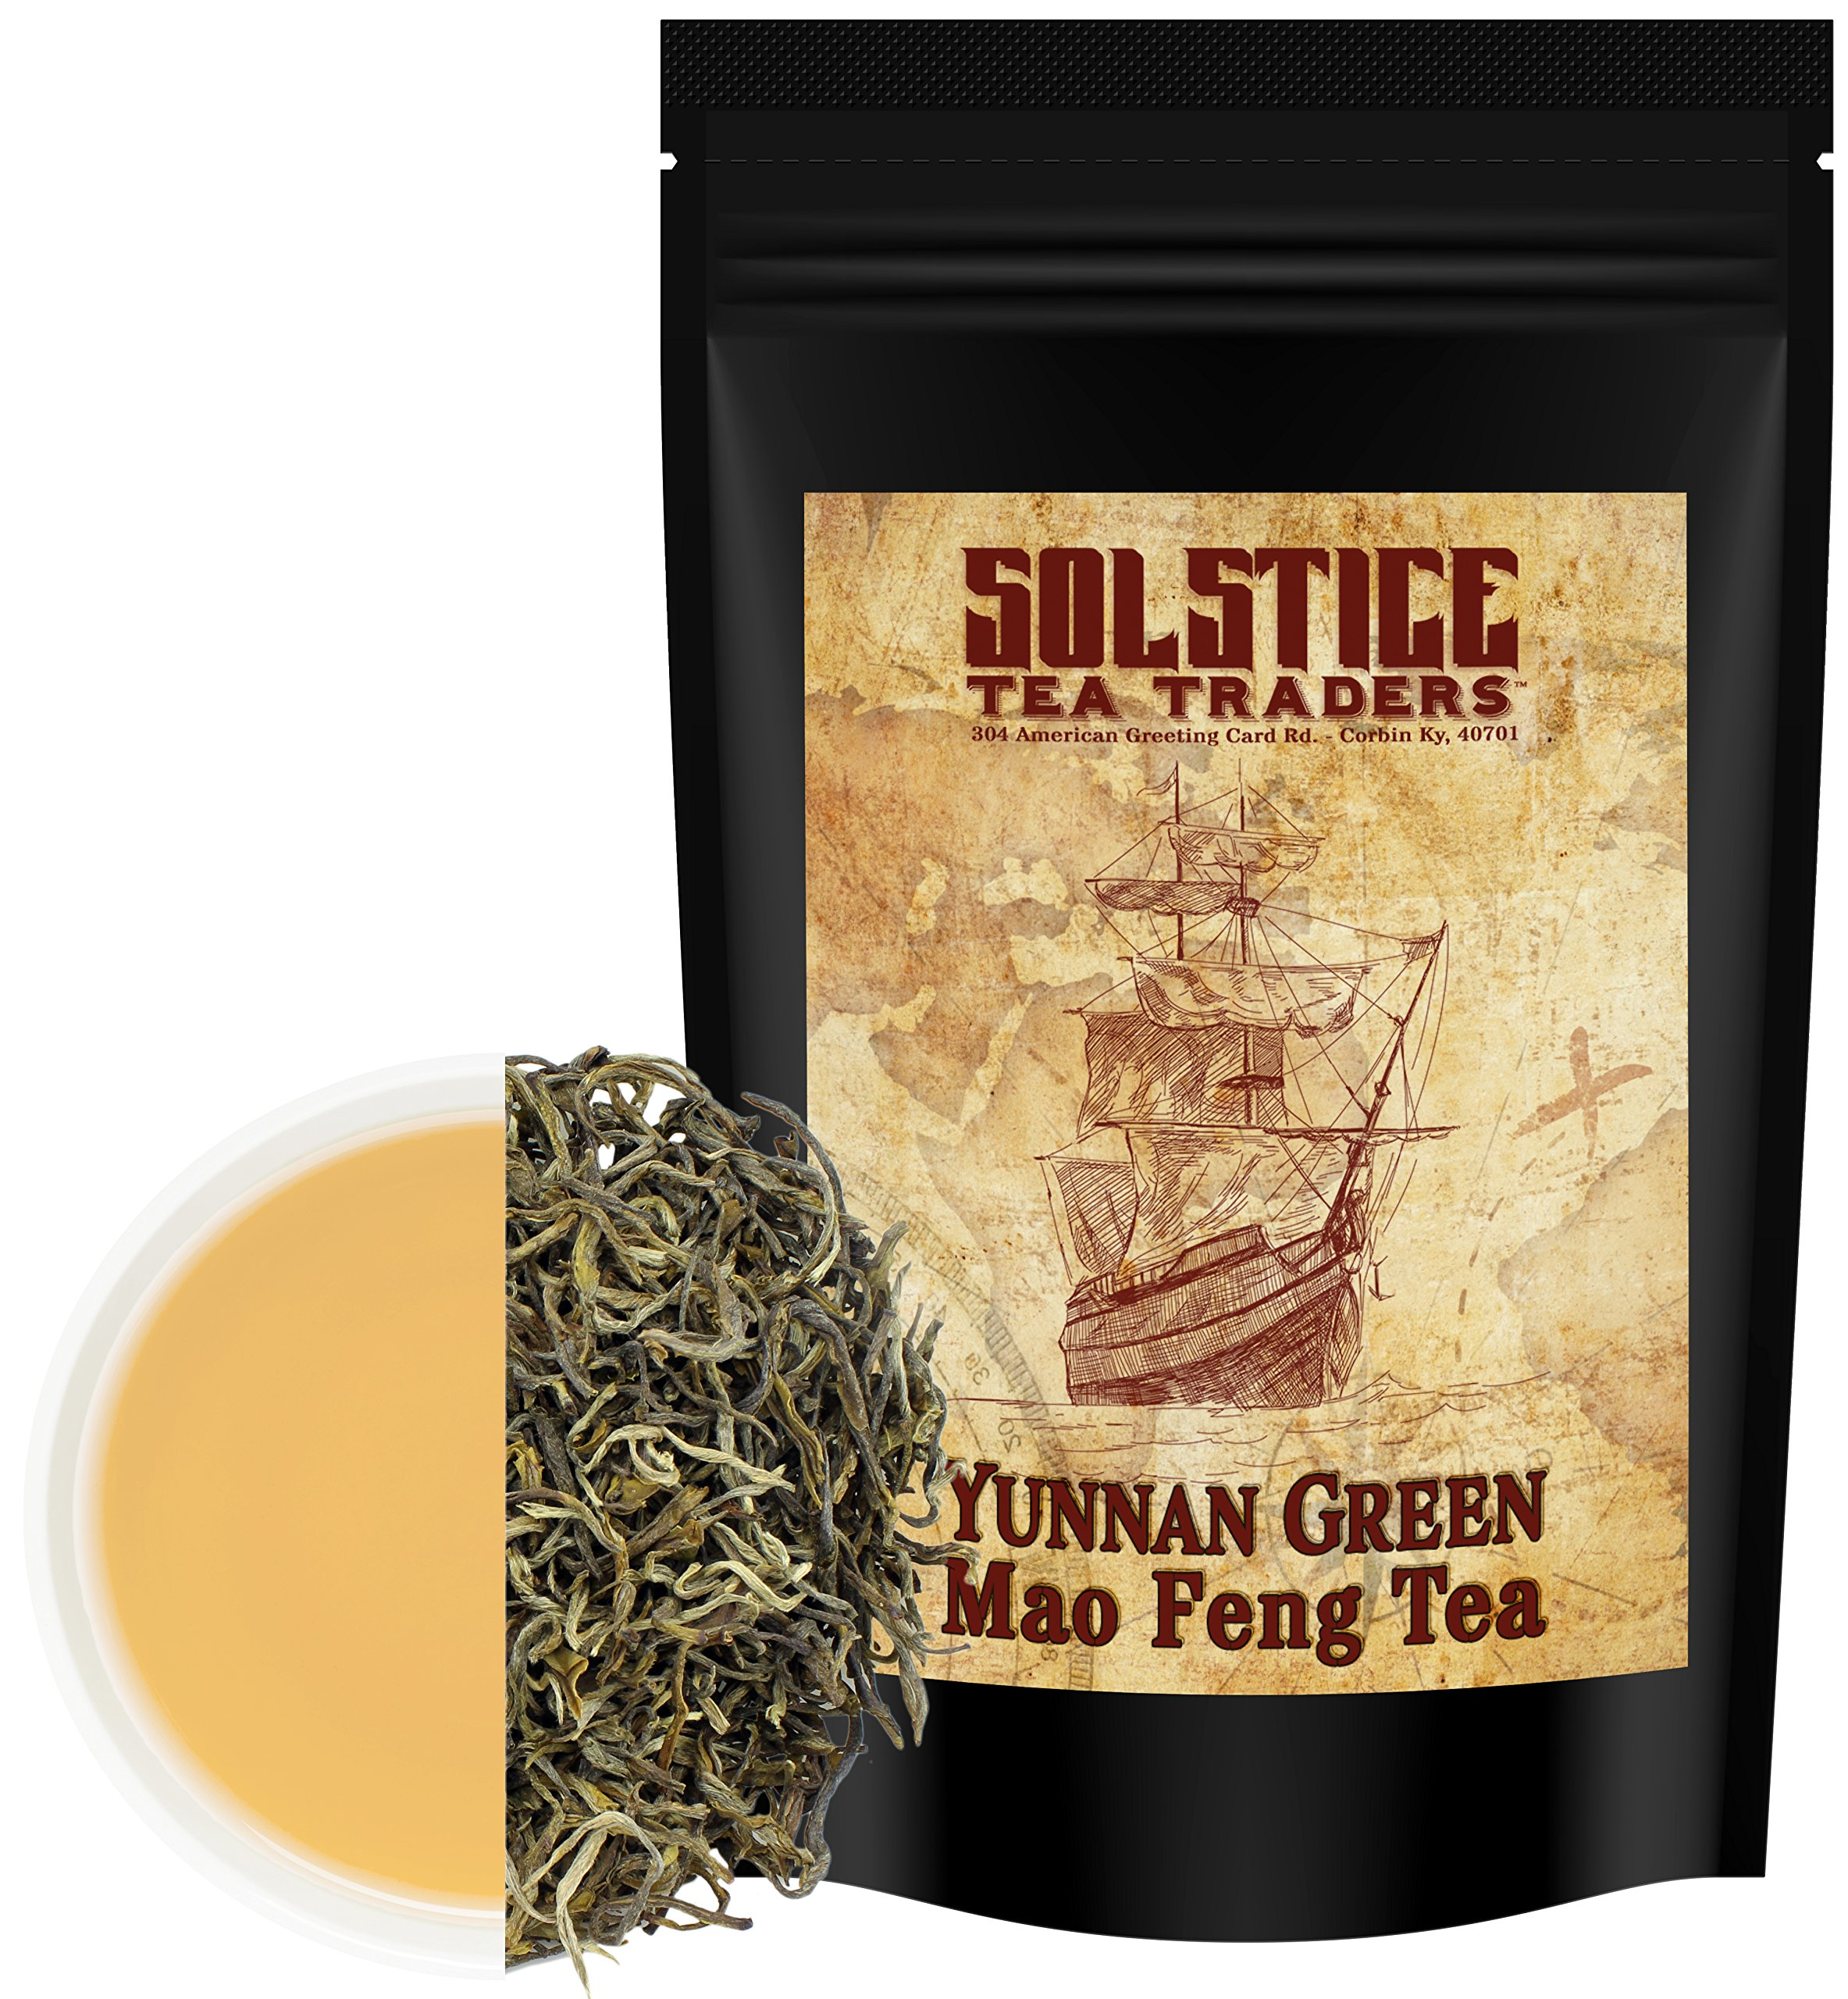 Yunnan Green Mao Fang Tea Loose Leaf (8-Ounce Bulk Bag); Chinese Spring Tea from the Home of Tea by Solstice Tea Traders